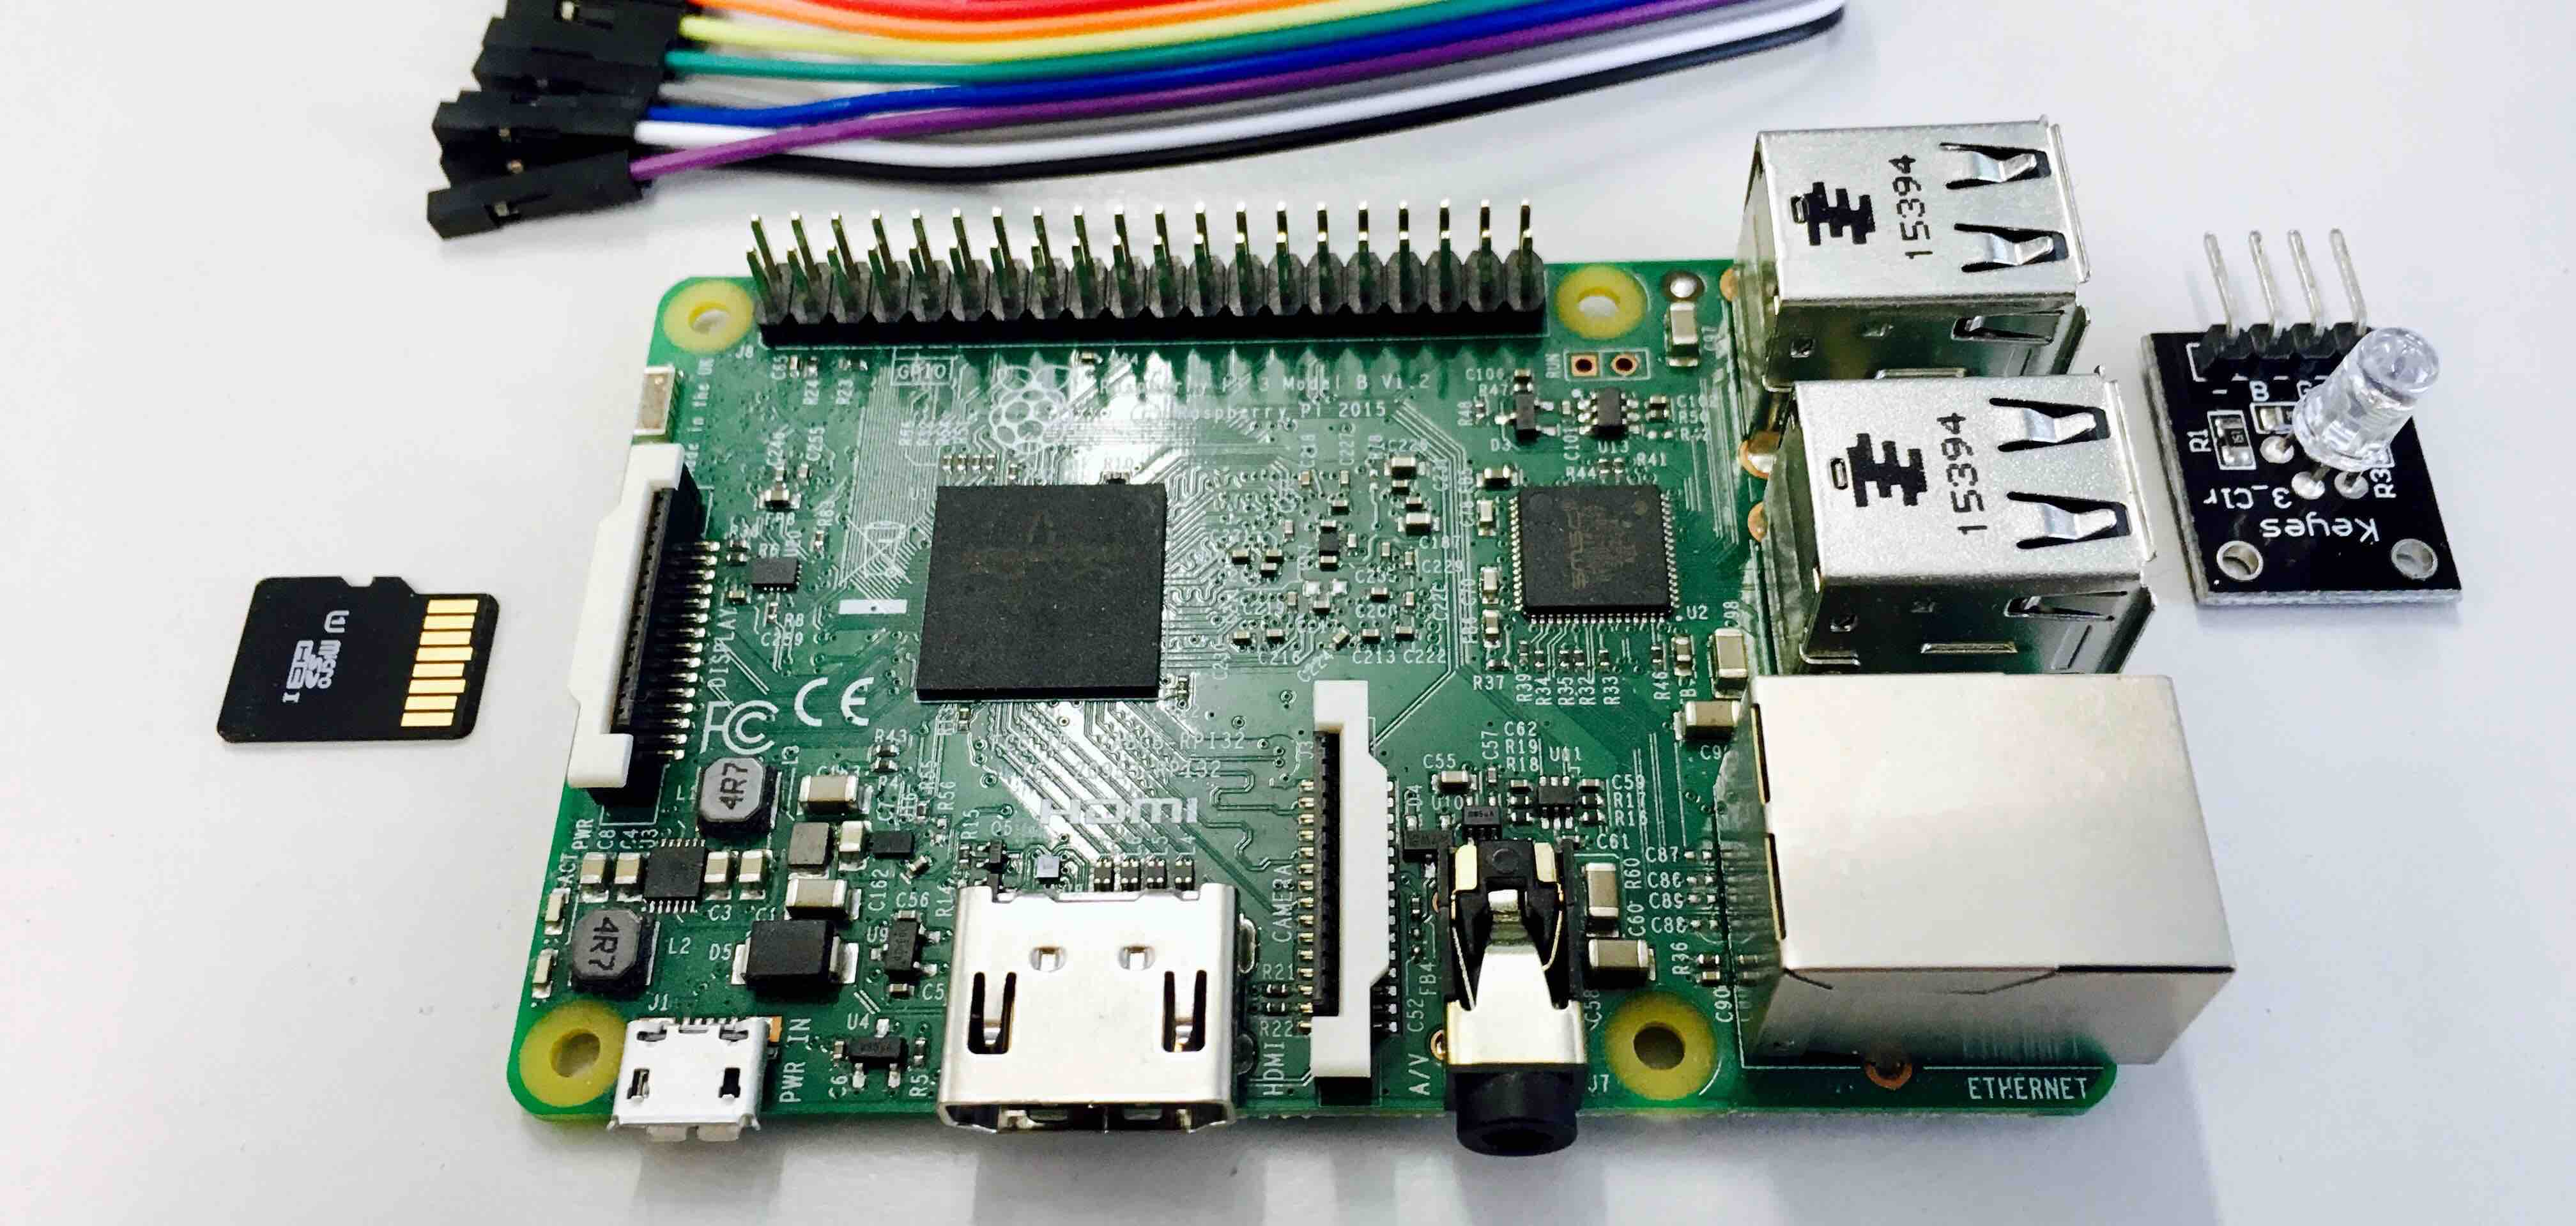 How-to-program-your-Raspberry-Pi-with-statechart-tools.jpg